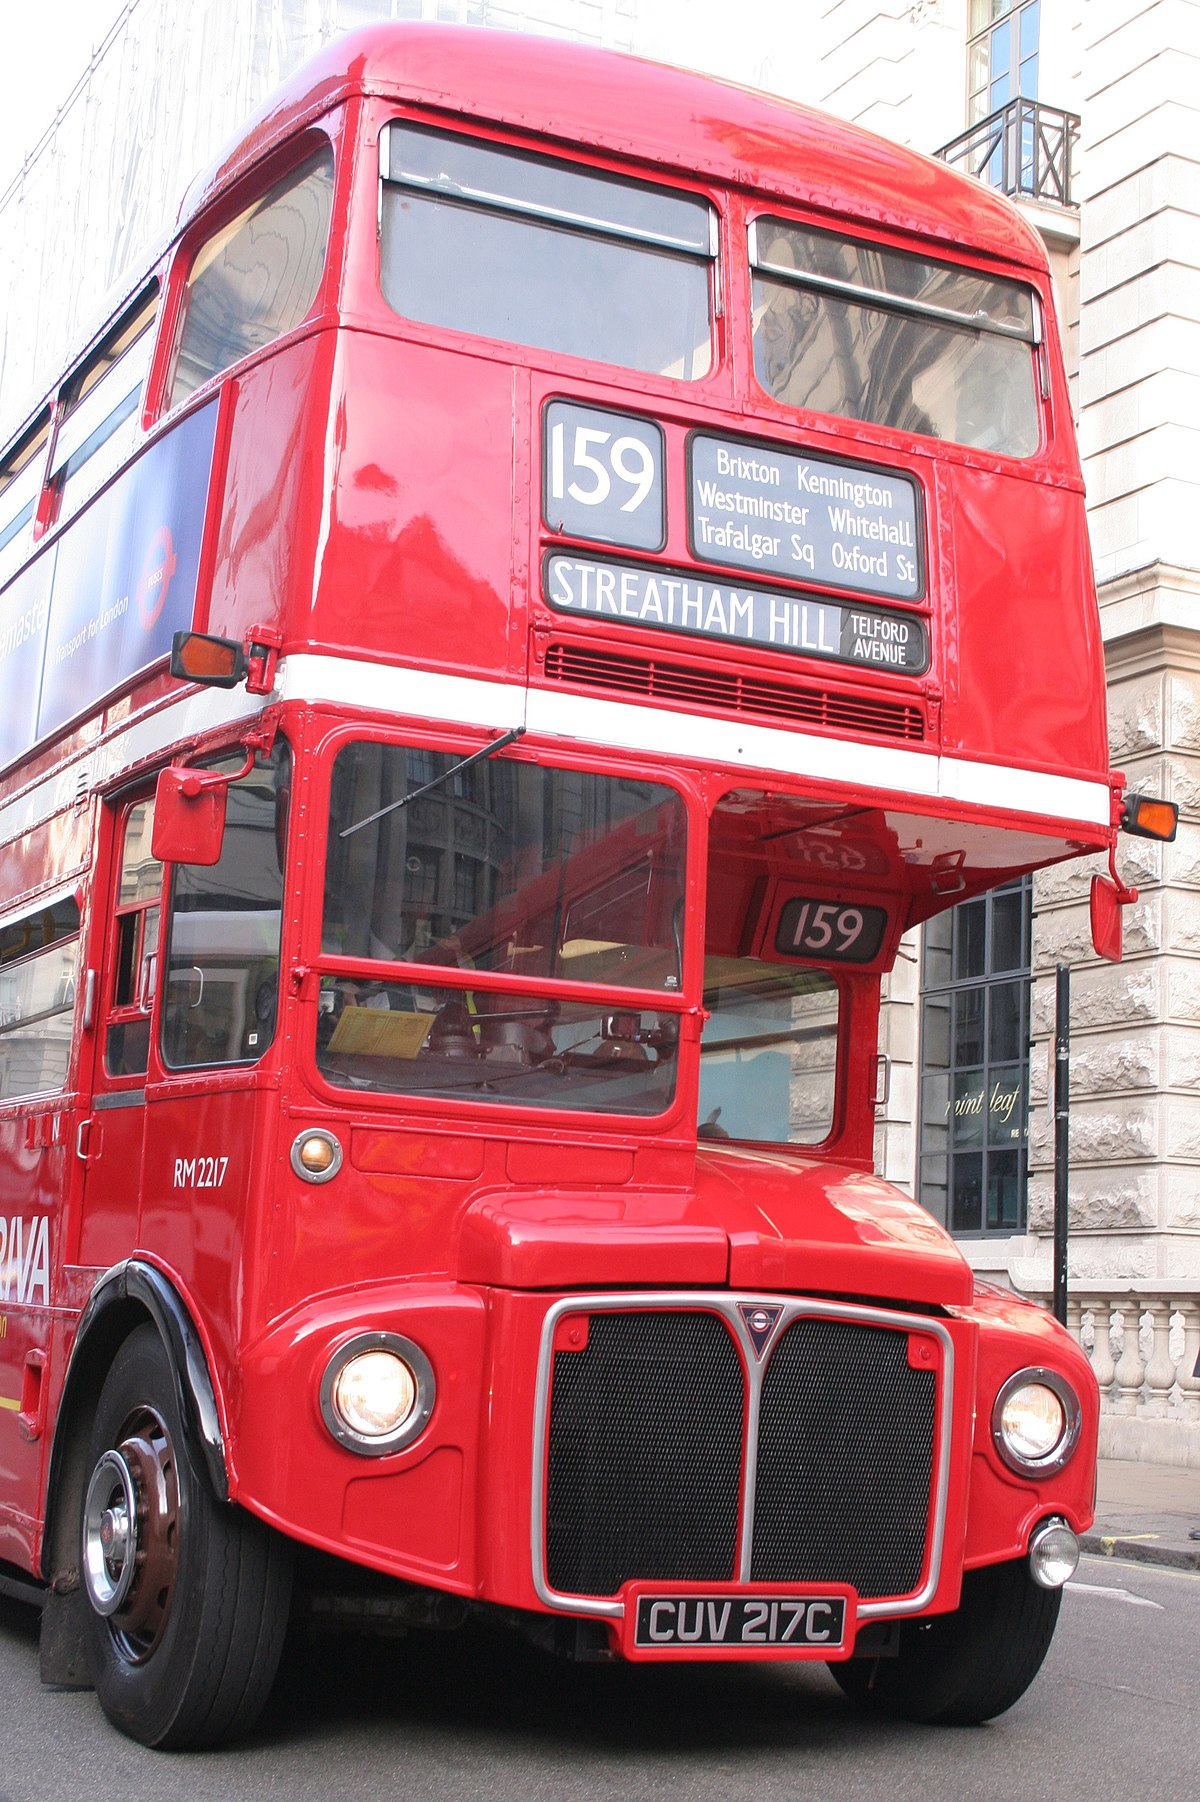 Routemaster bus RM2217 - Wikimedia Commons